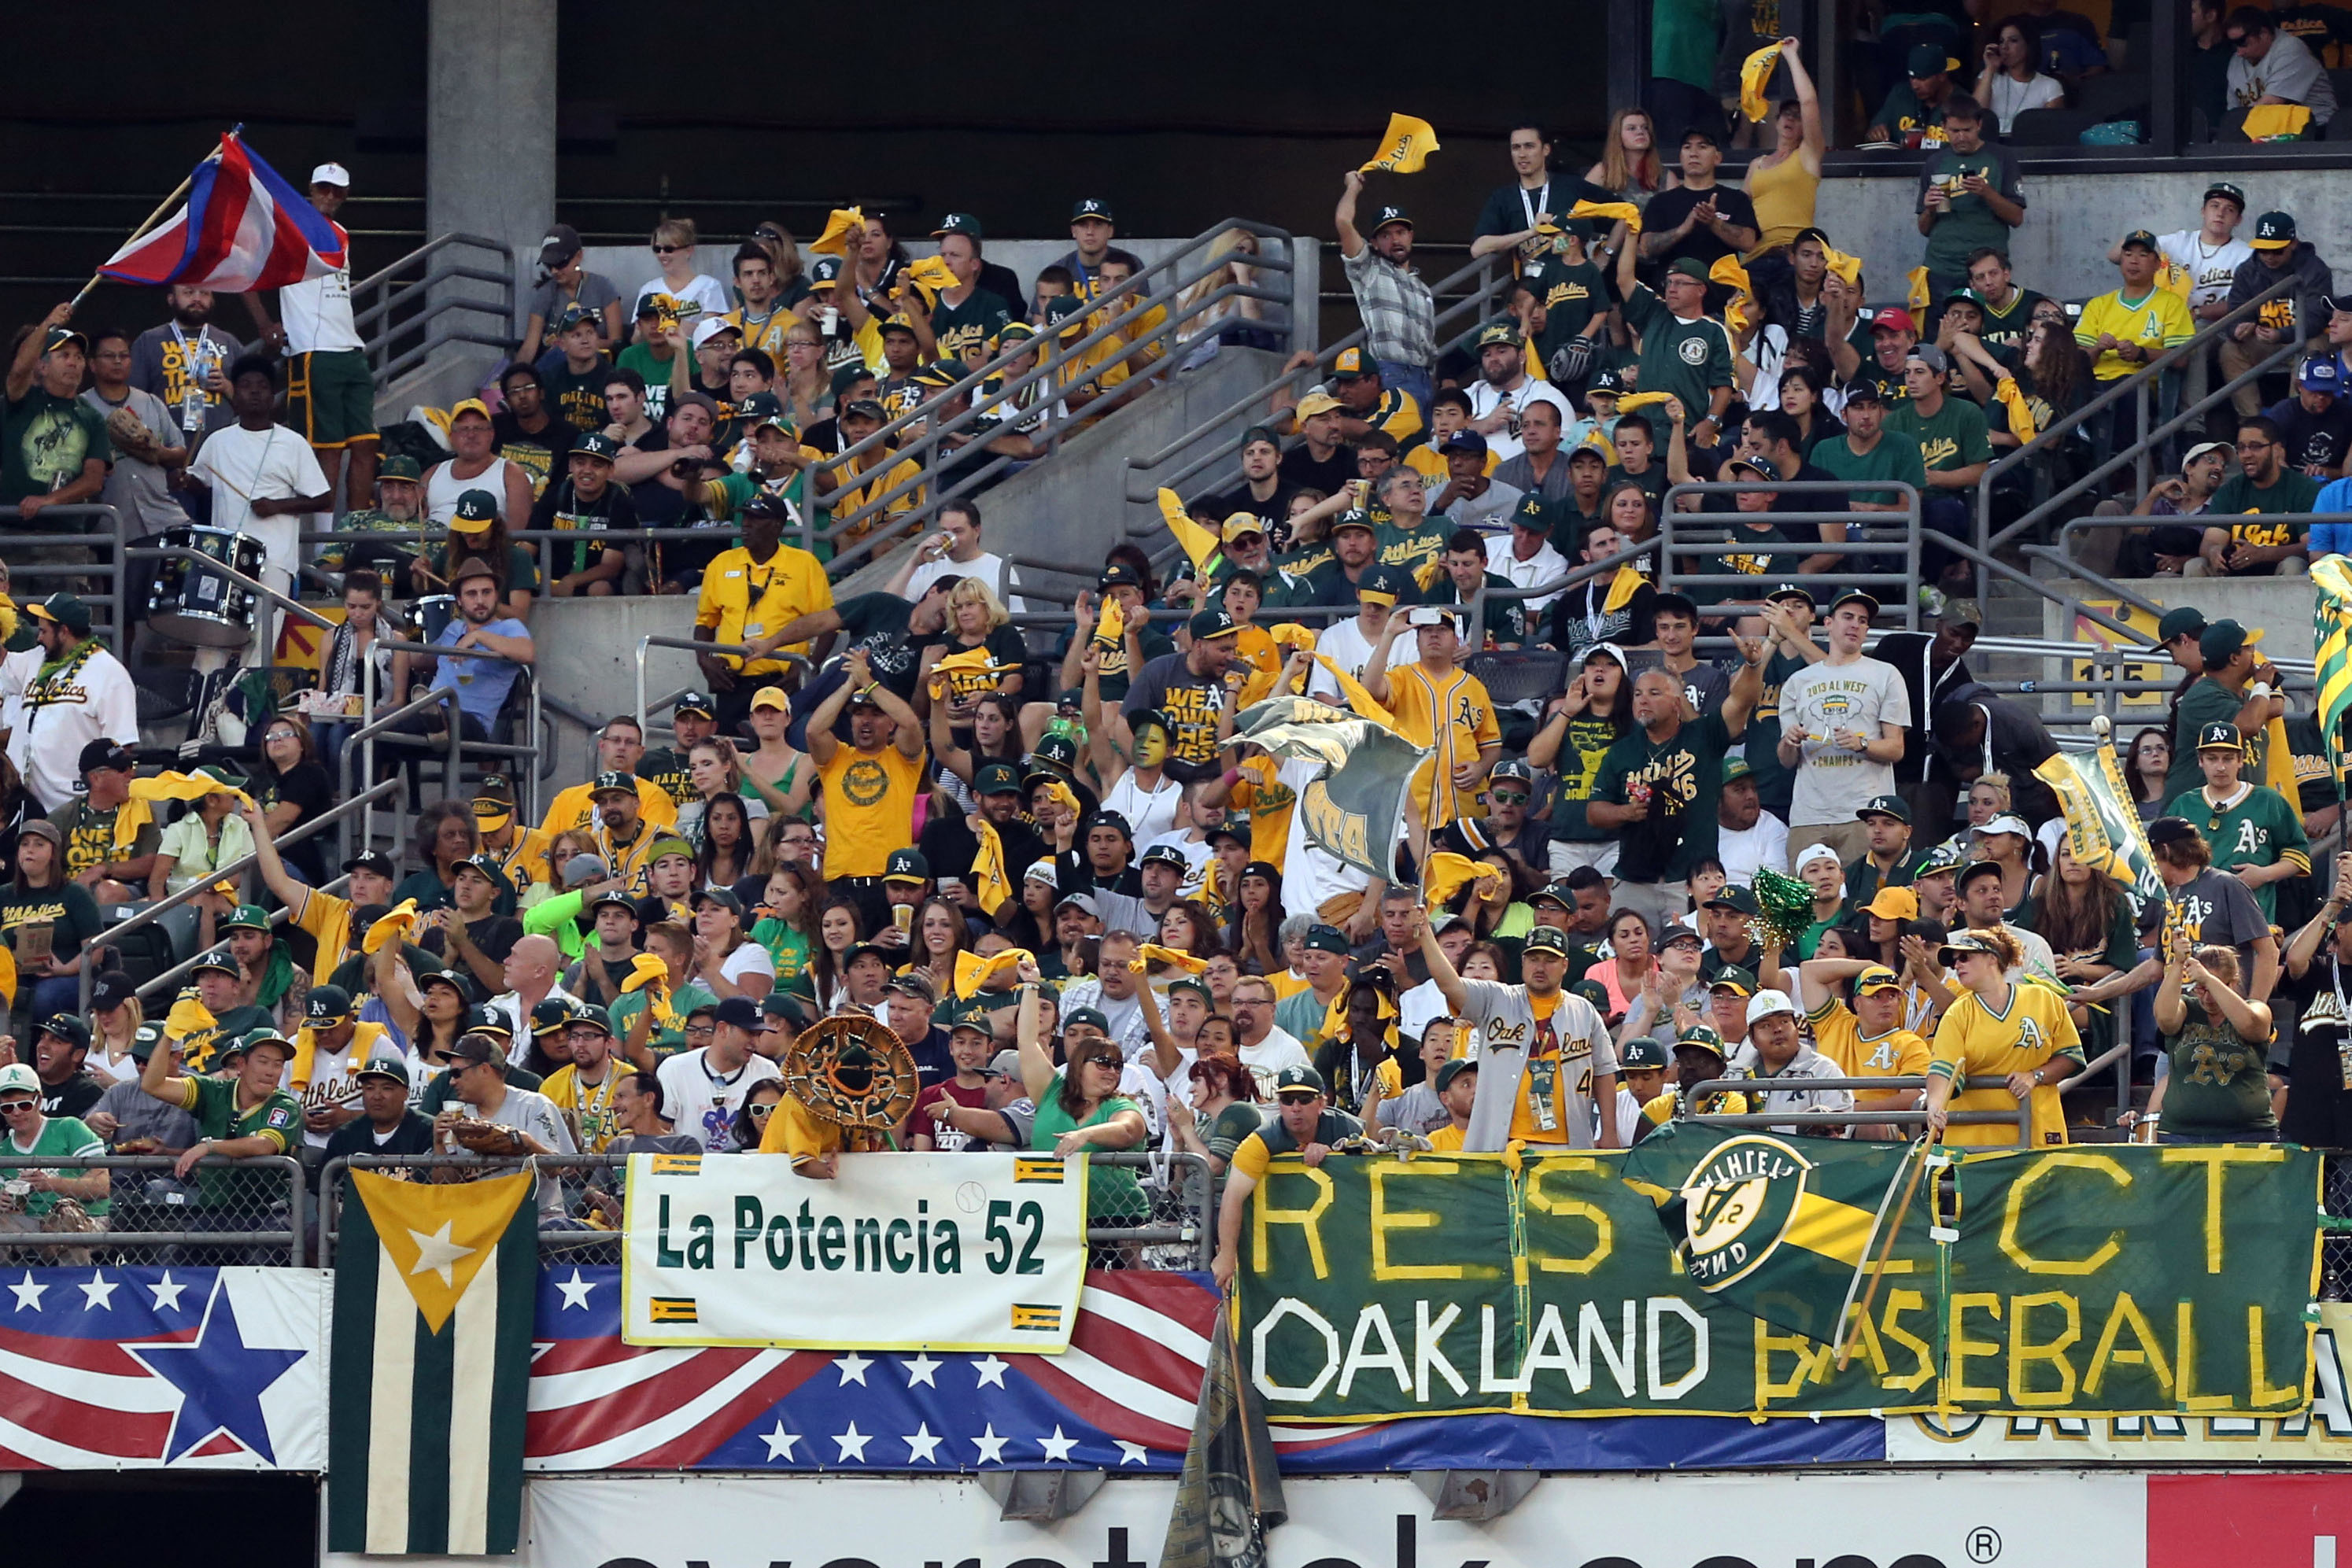 O.co Coliseum will remain the A's home for the foreseeable future.